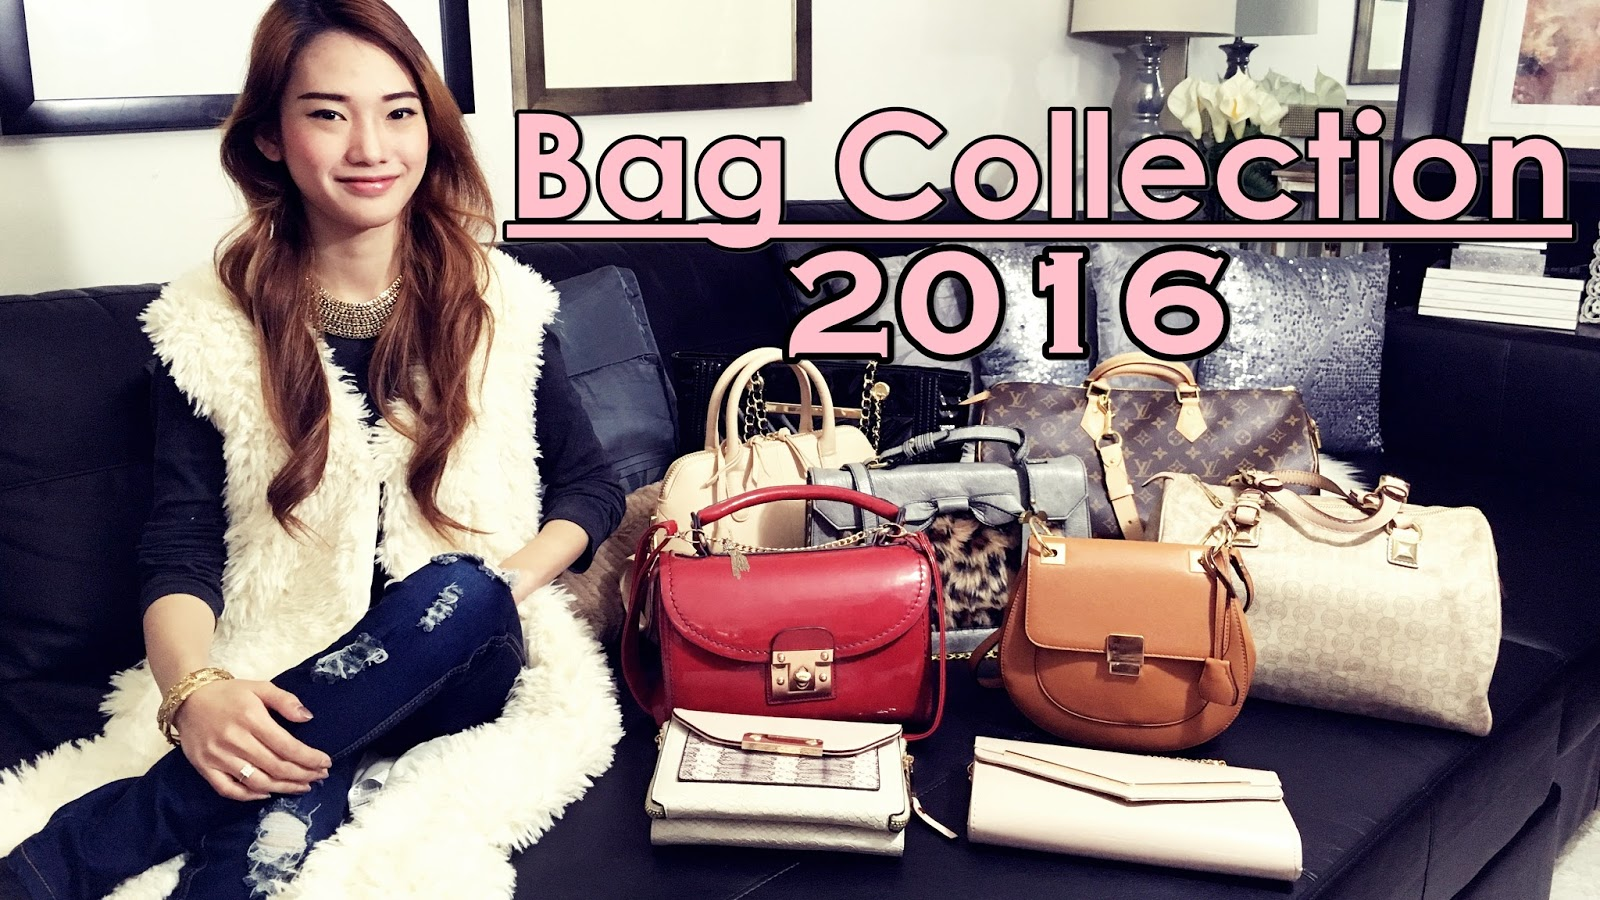 Bag Collection 2016!